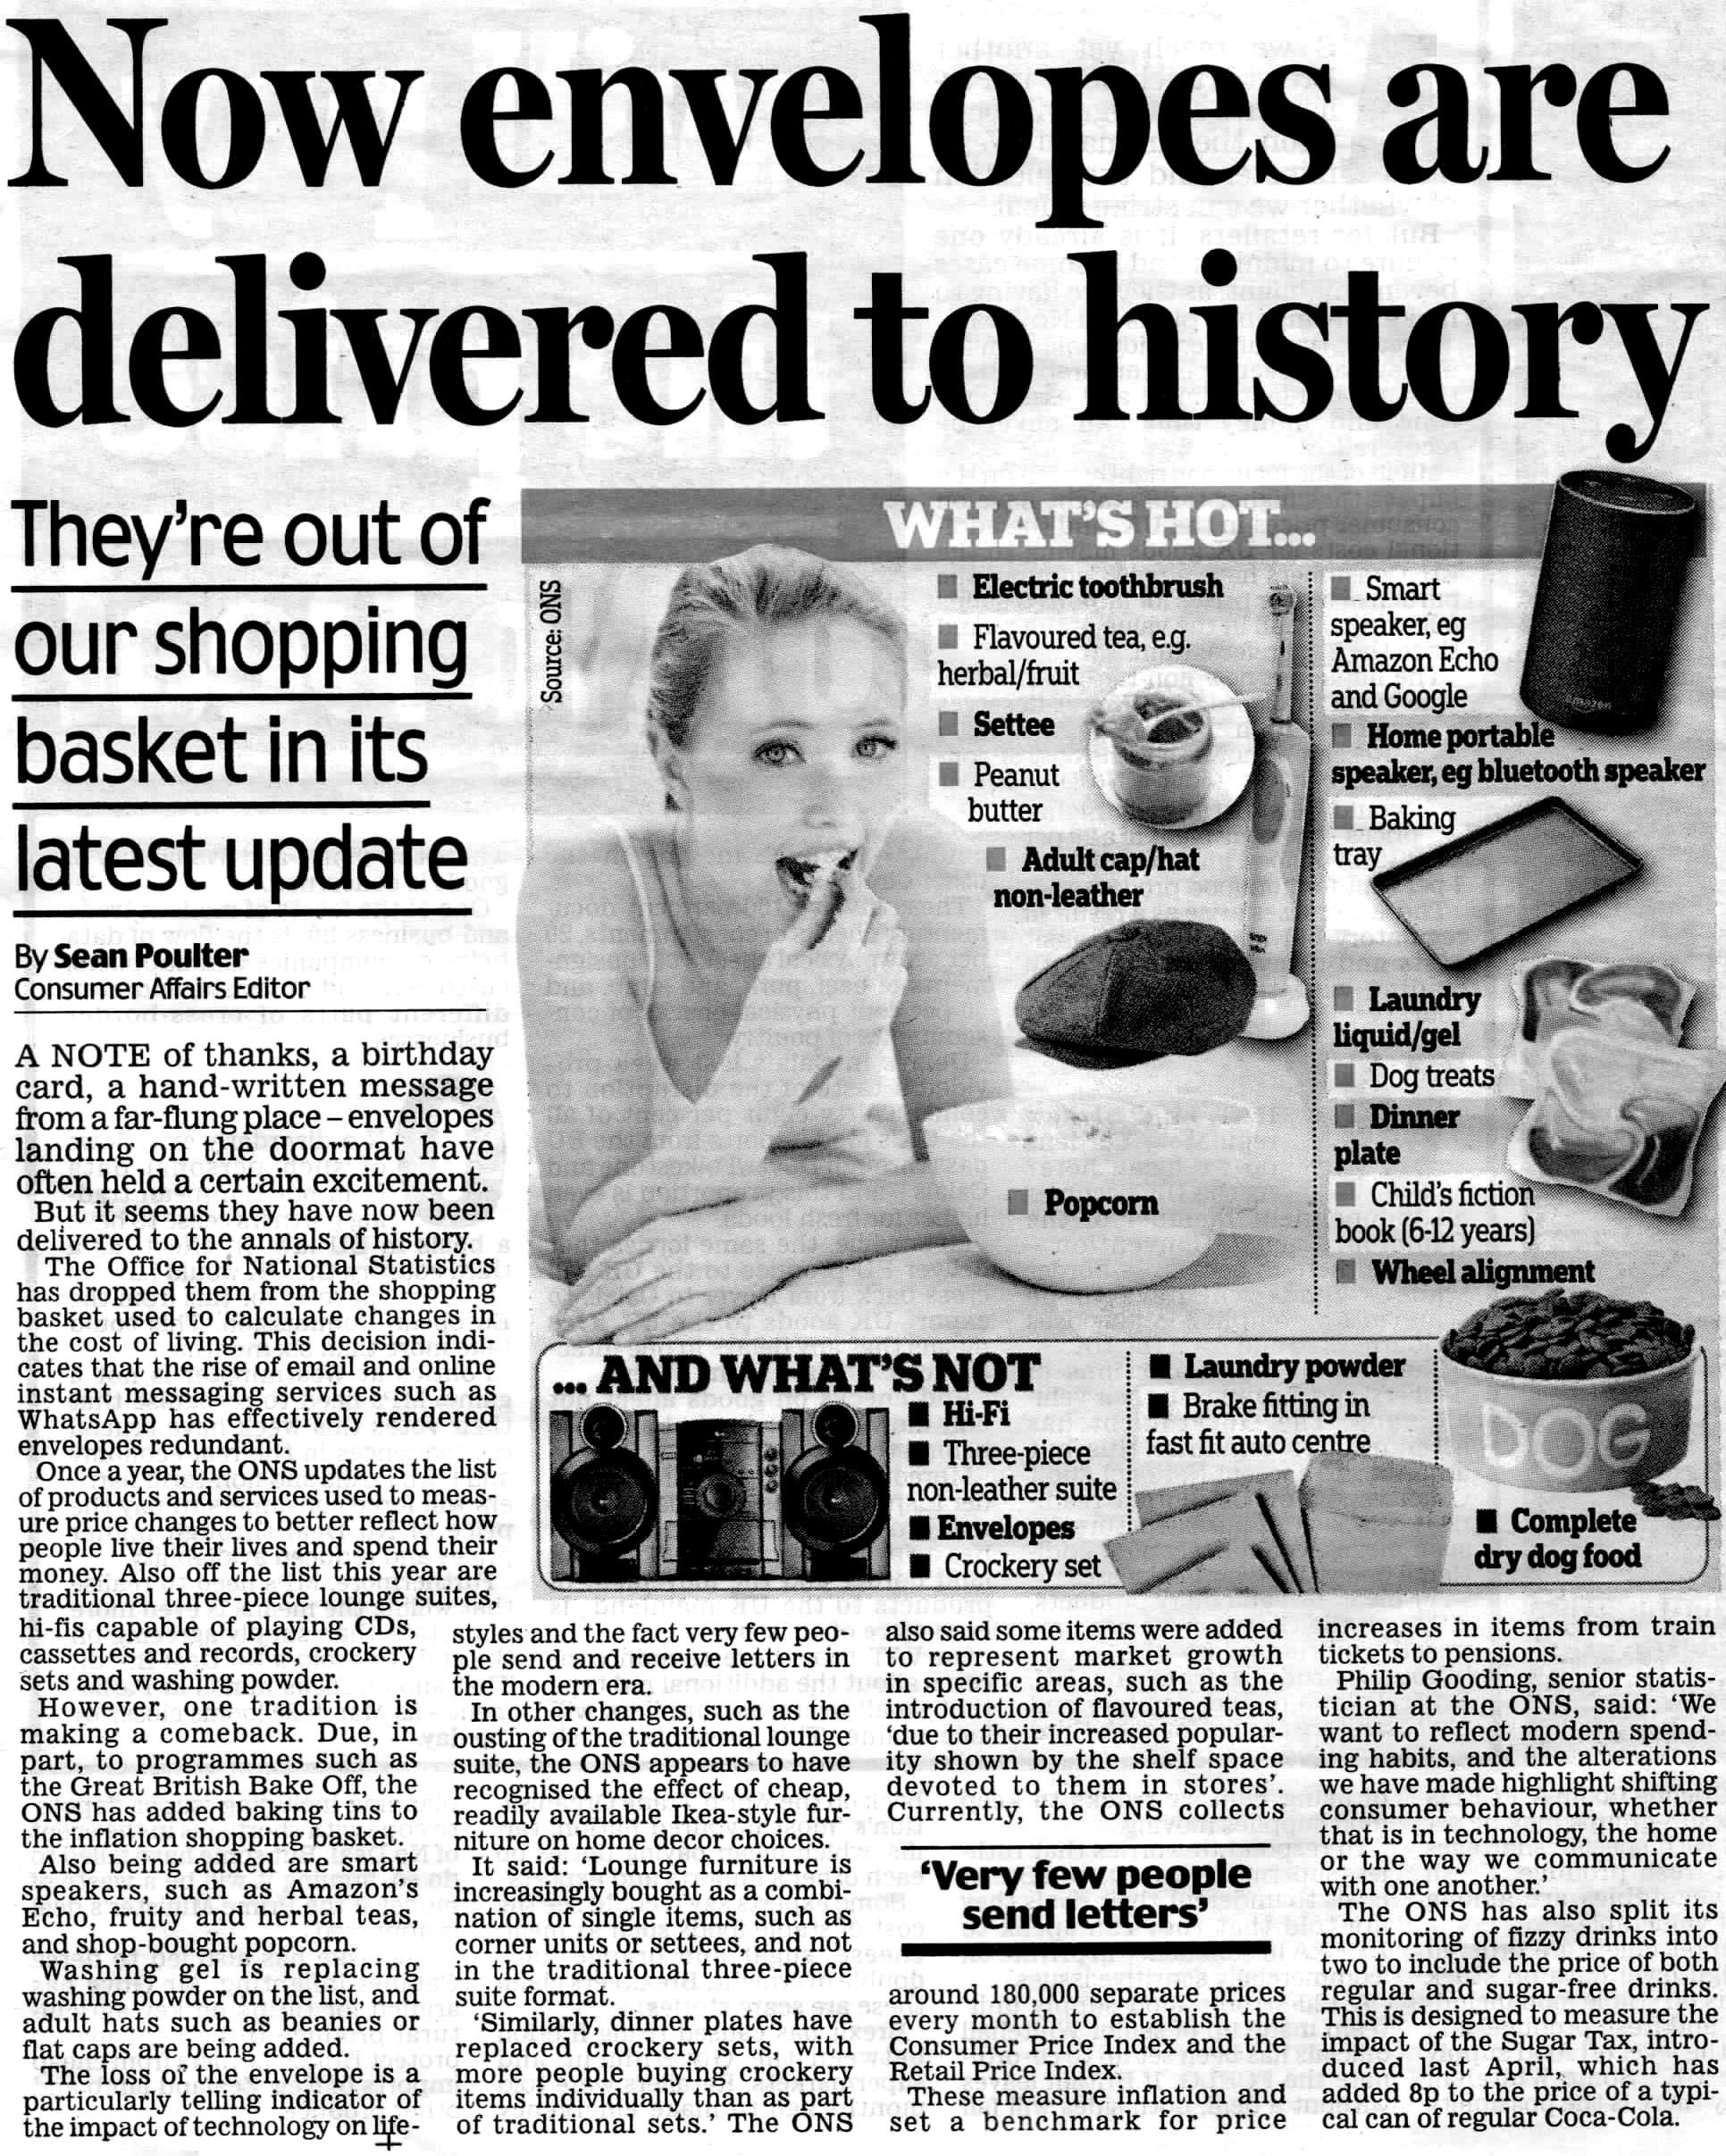 Above: The Daily Mail suggested wrongly that greeting cards have been dropped from the ONS basket.